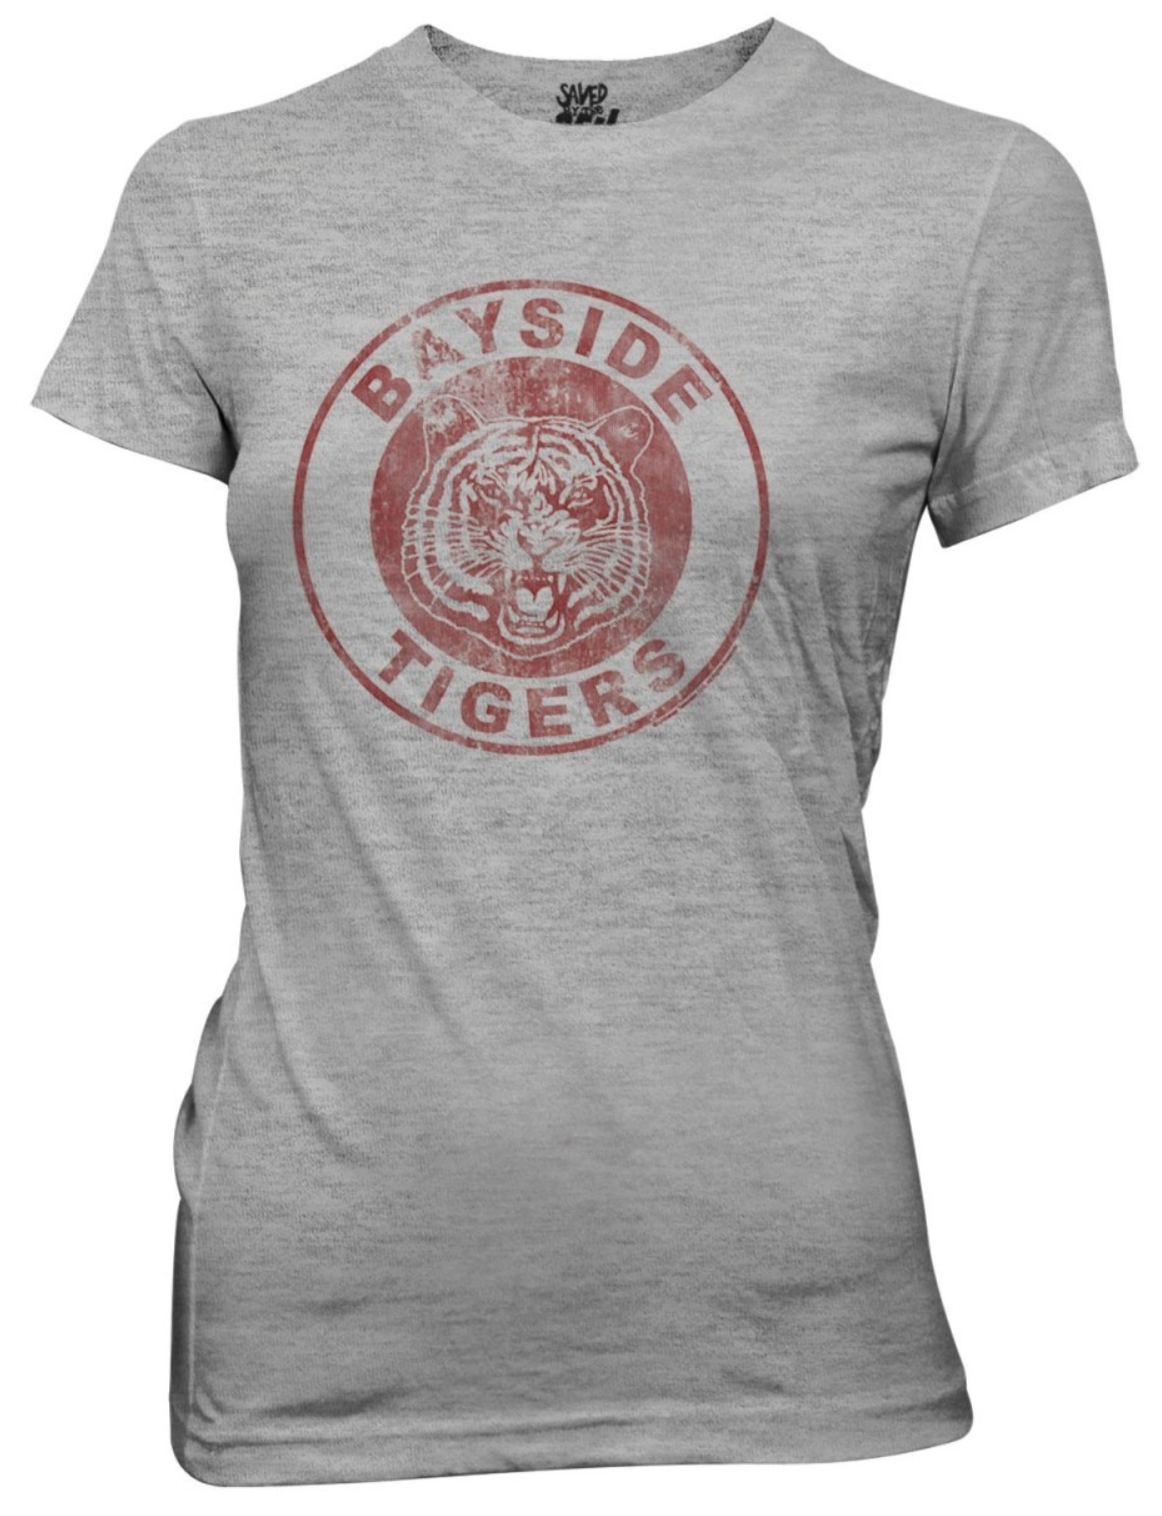 Ripple Junction Saved By The Bell Bayside Tigers Juniors T-Shirt